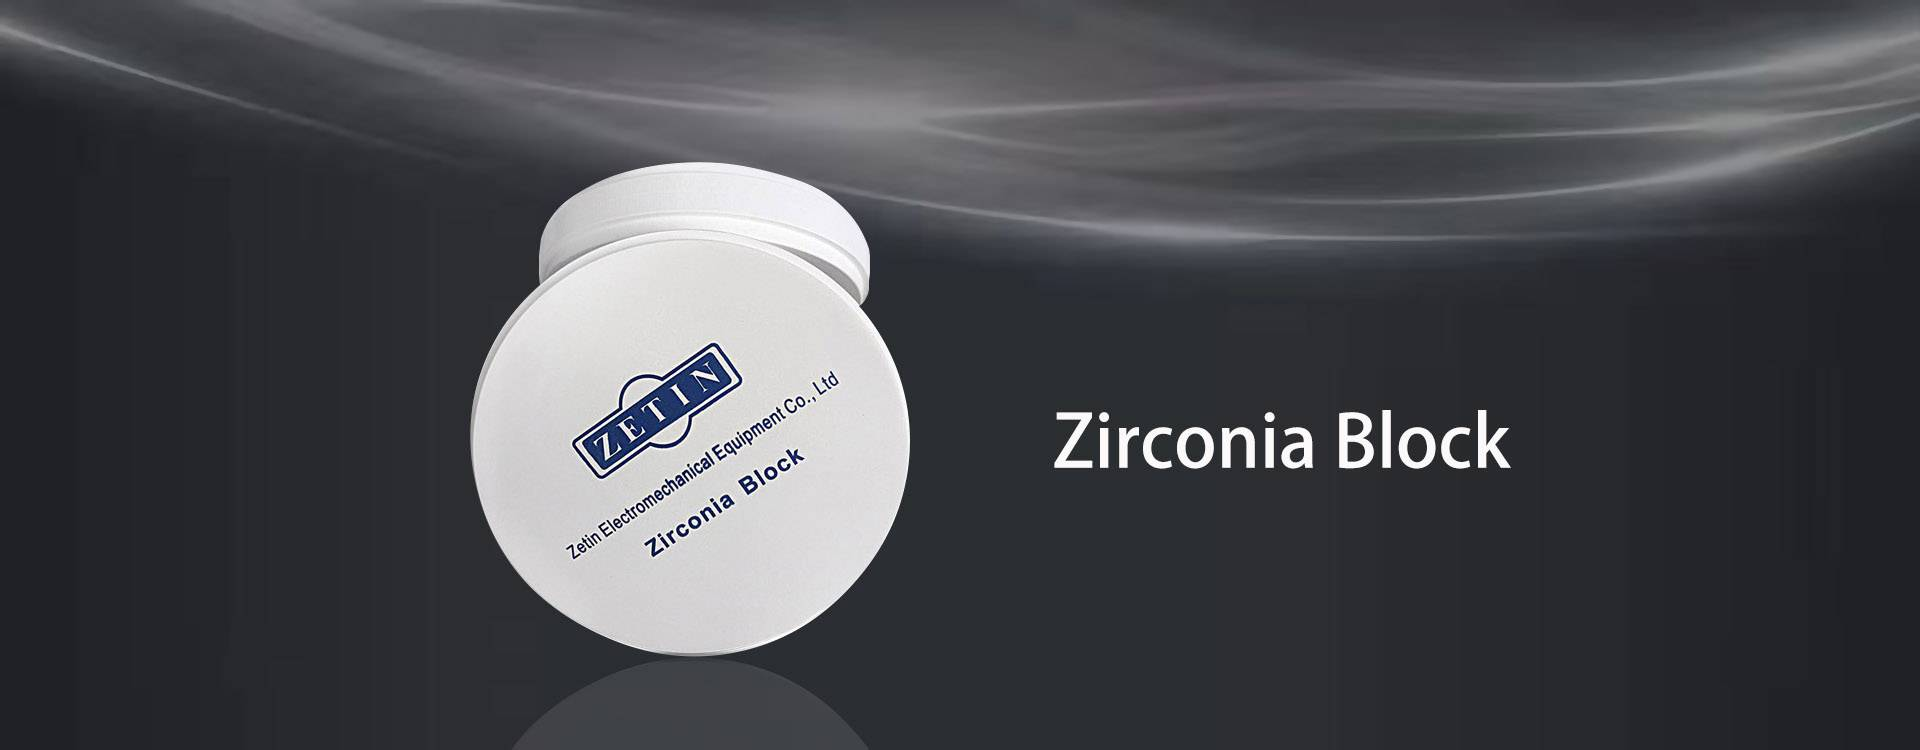 Zetin zirconia block for dental